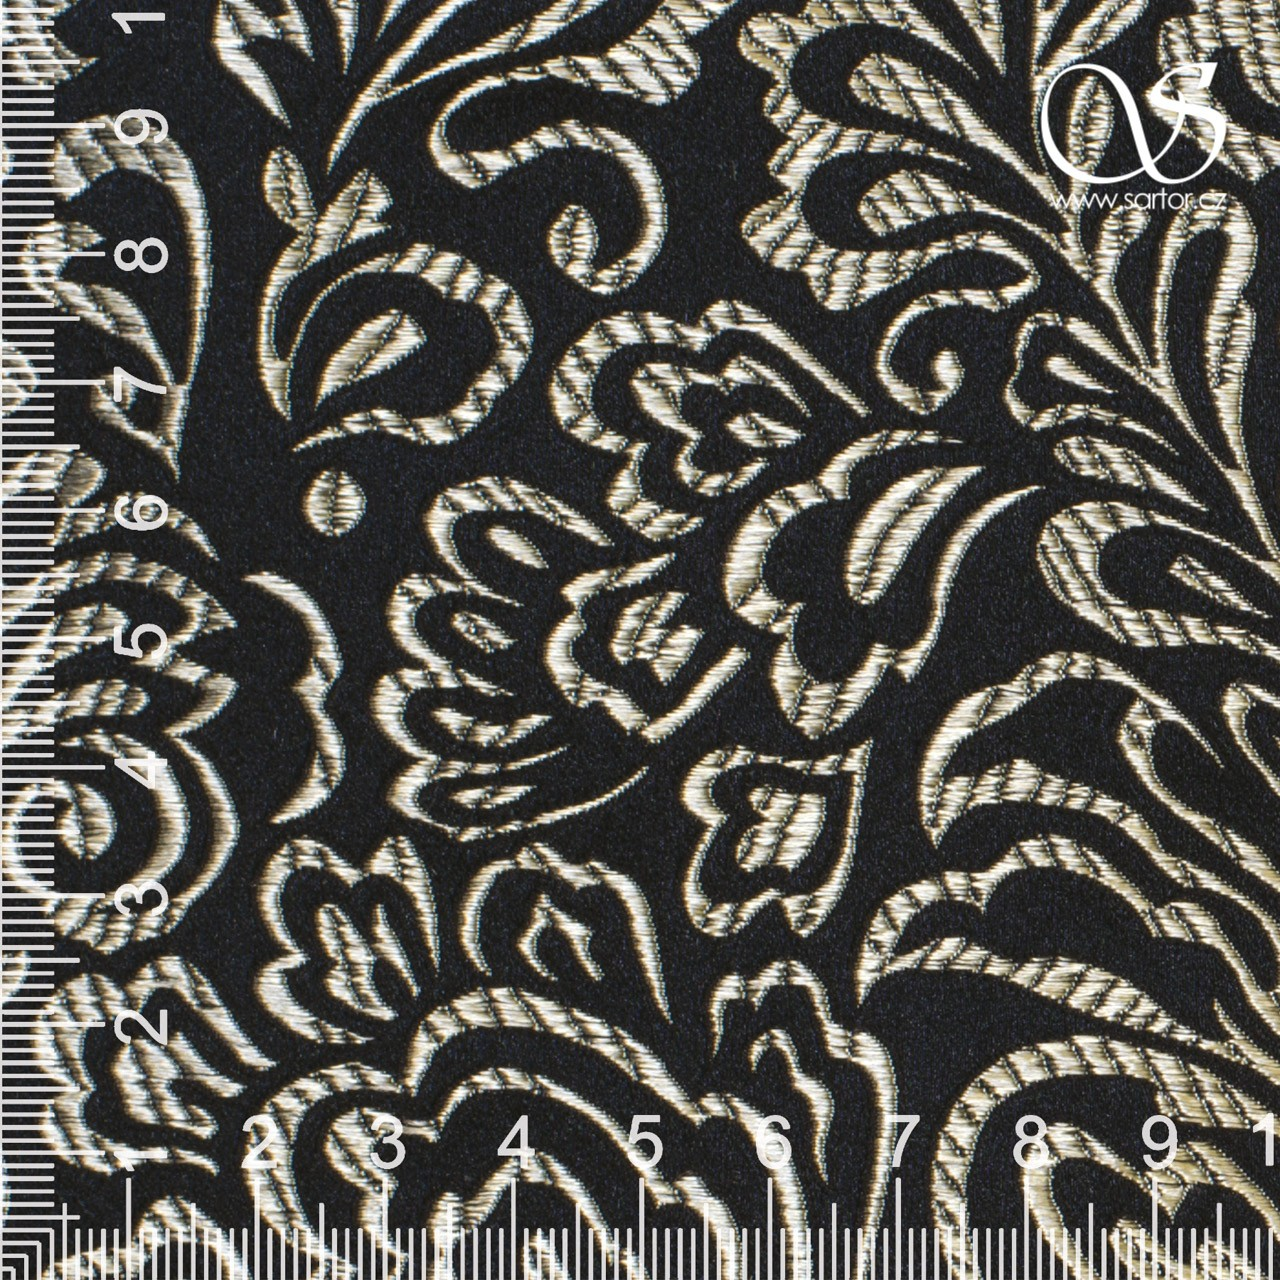 Brocade Fern, Black and Gold